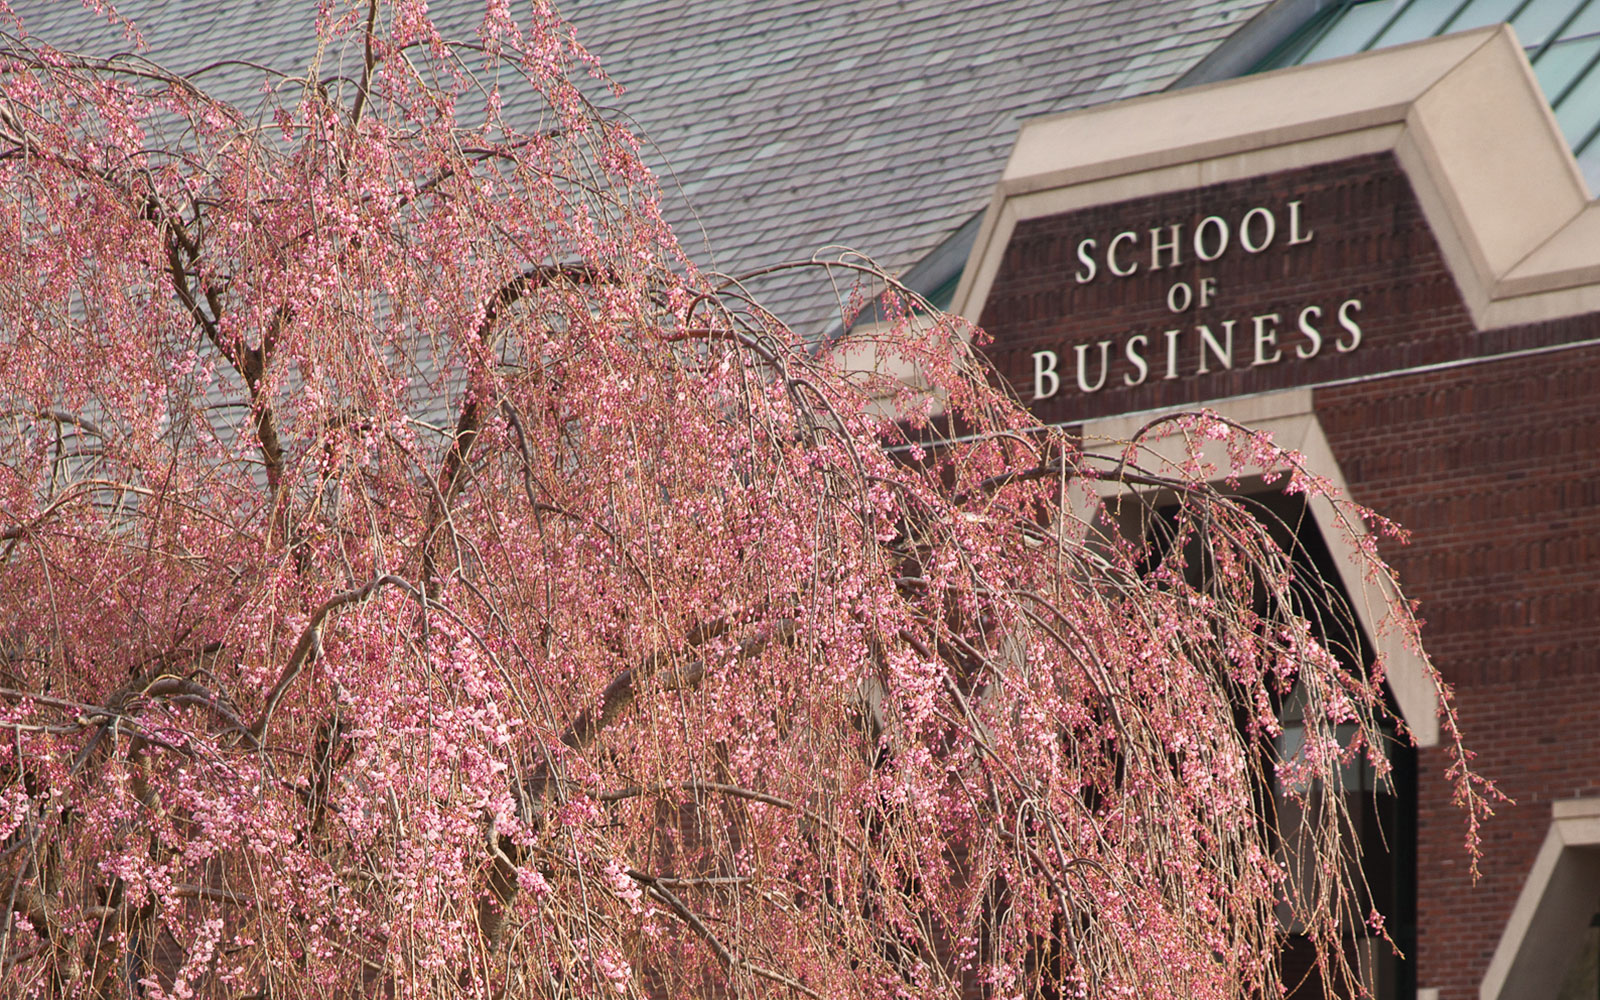 School of Business Exterior, Winter